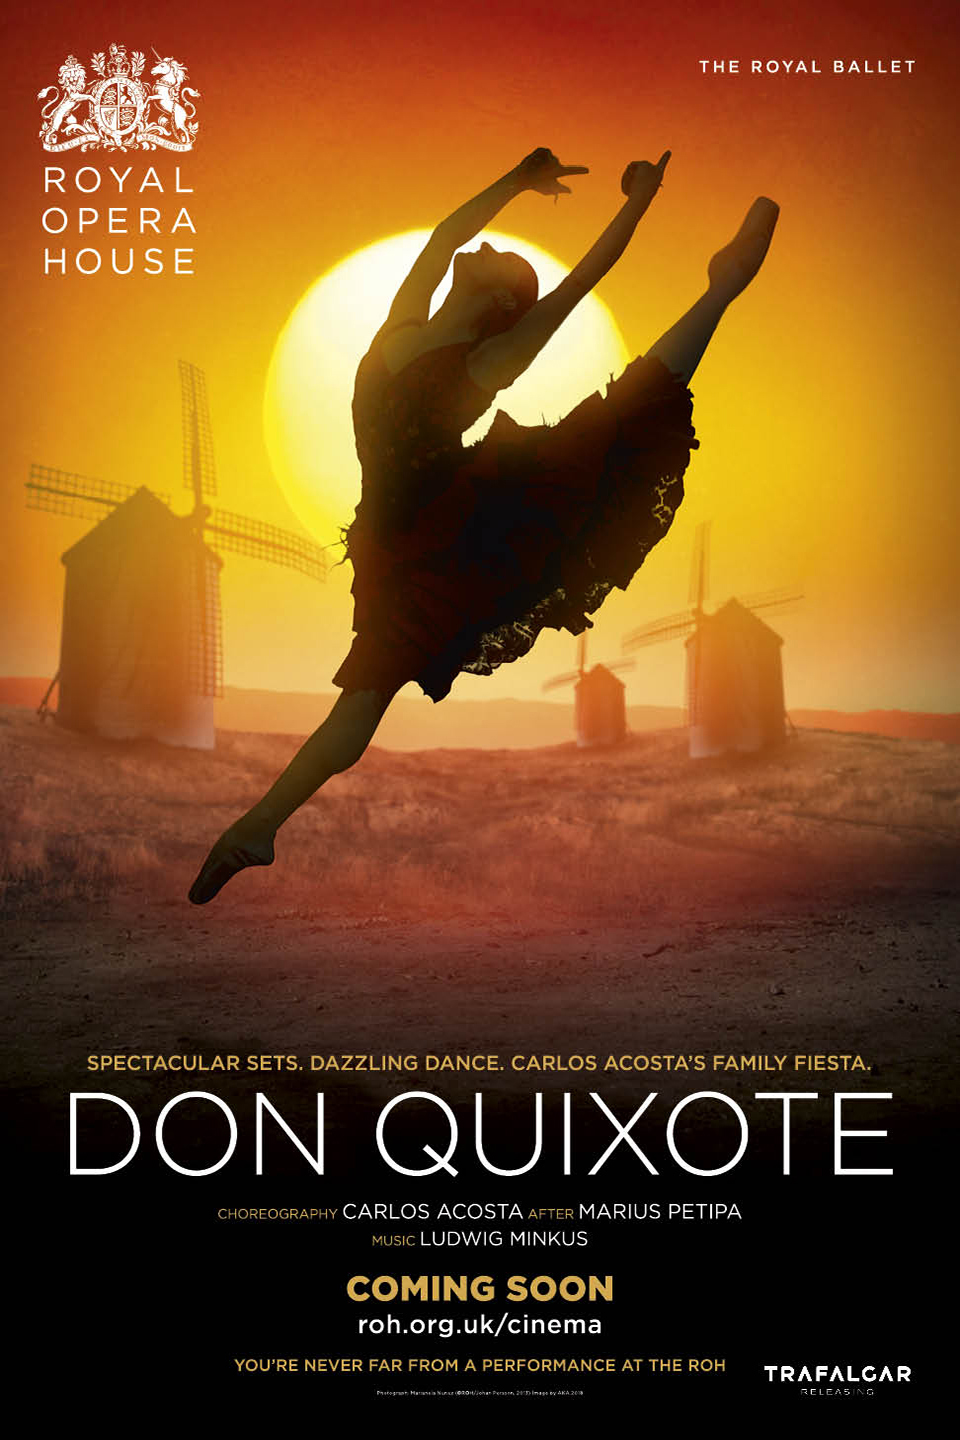 ROH 2018-19 Season Don Quixote